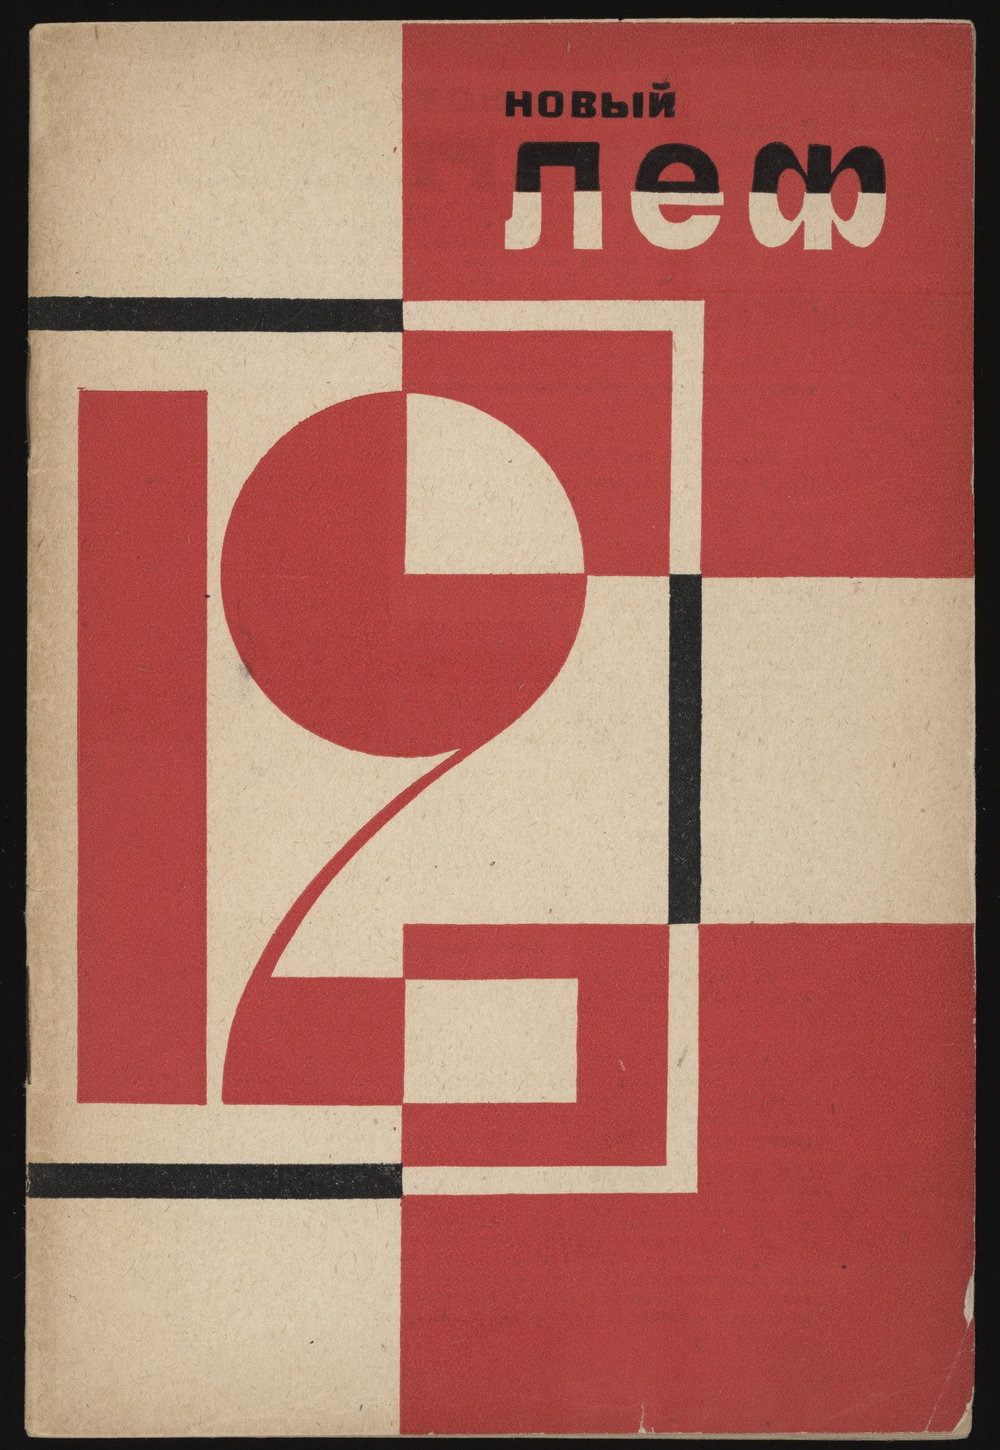 Aleksandr Rodchenko. New LEF: Journal of the Left Front of the Arts), no. 12, 1928